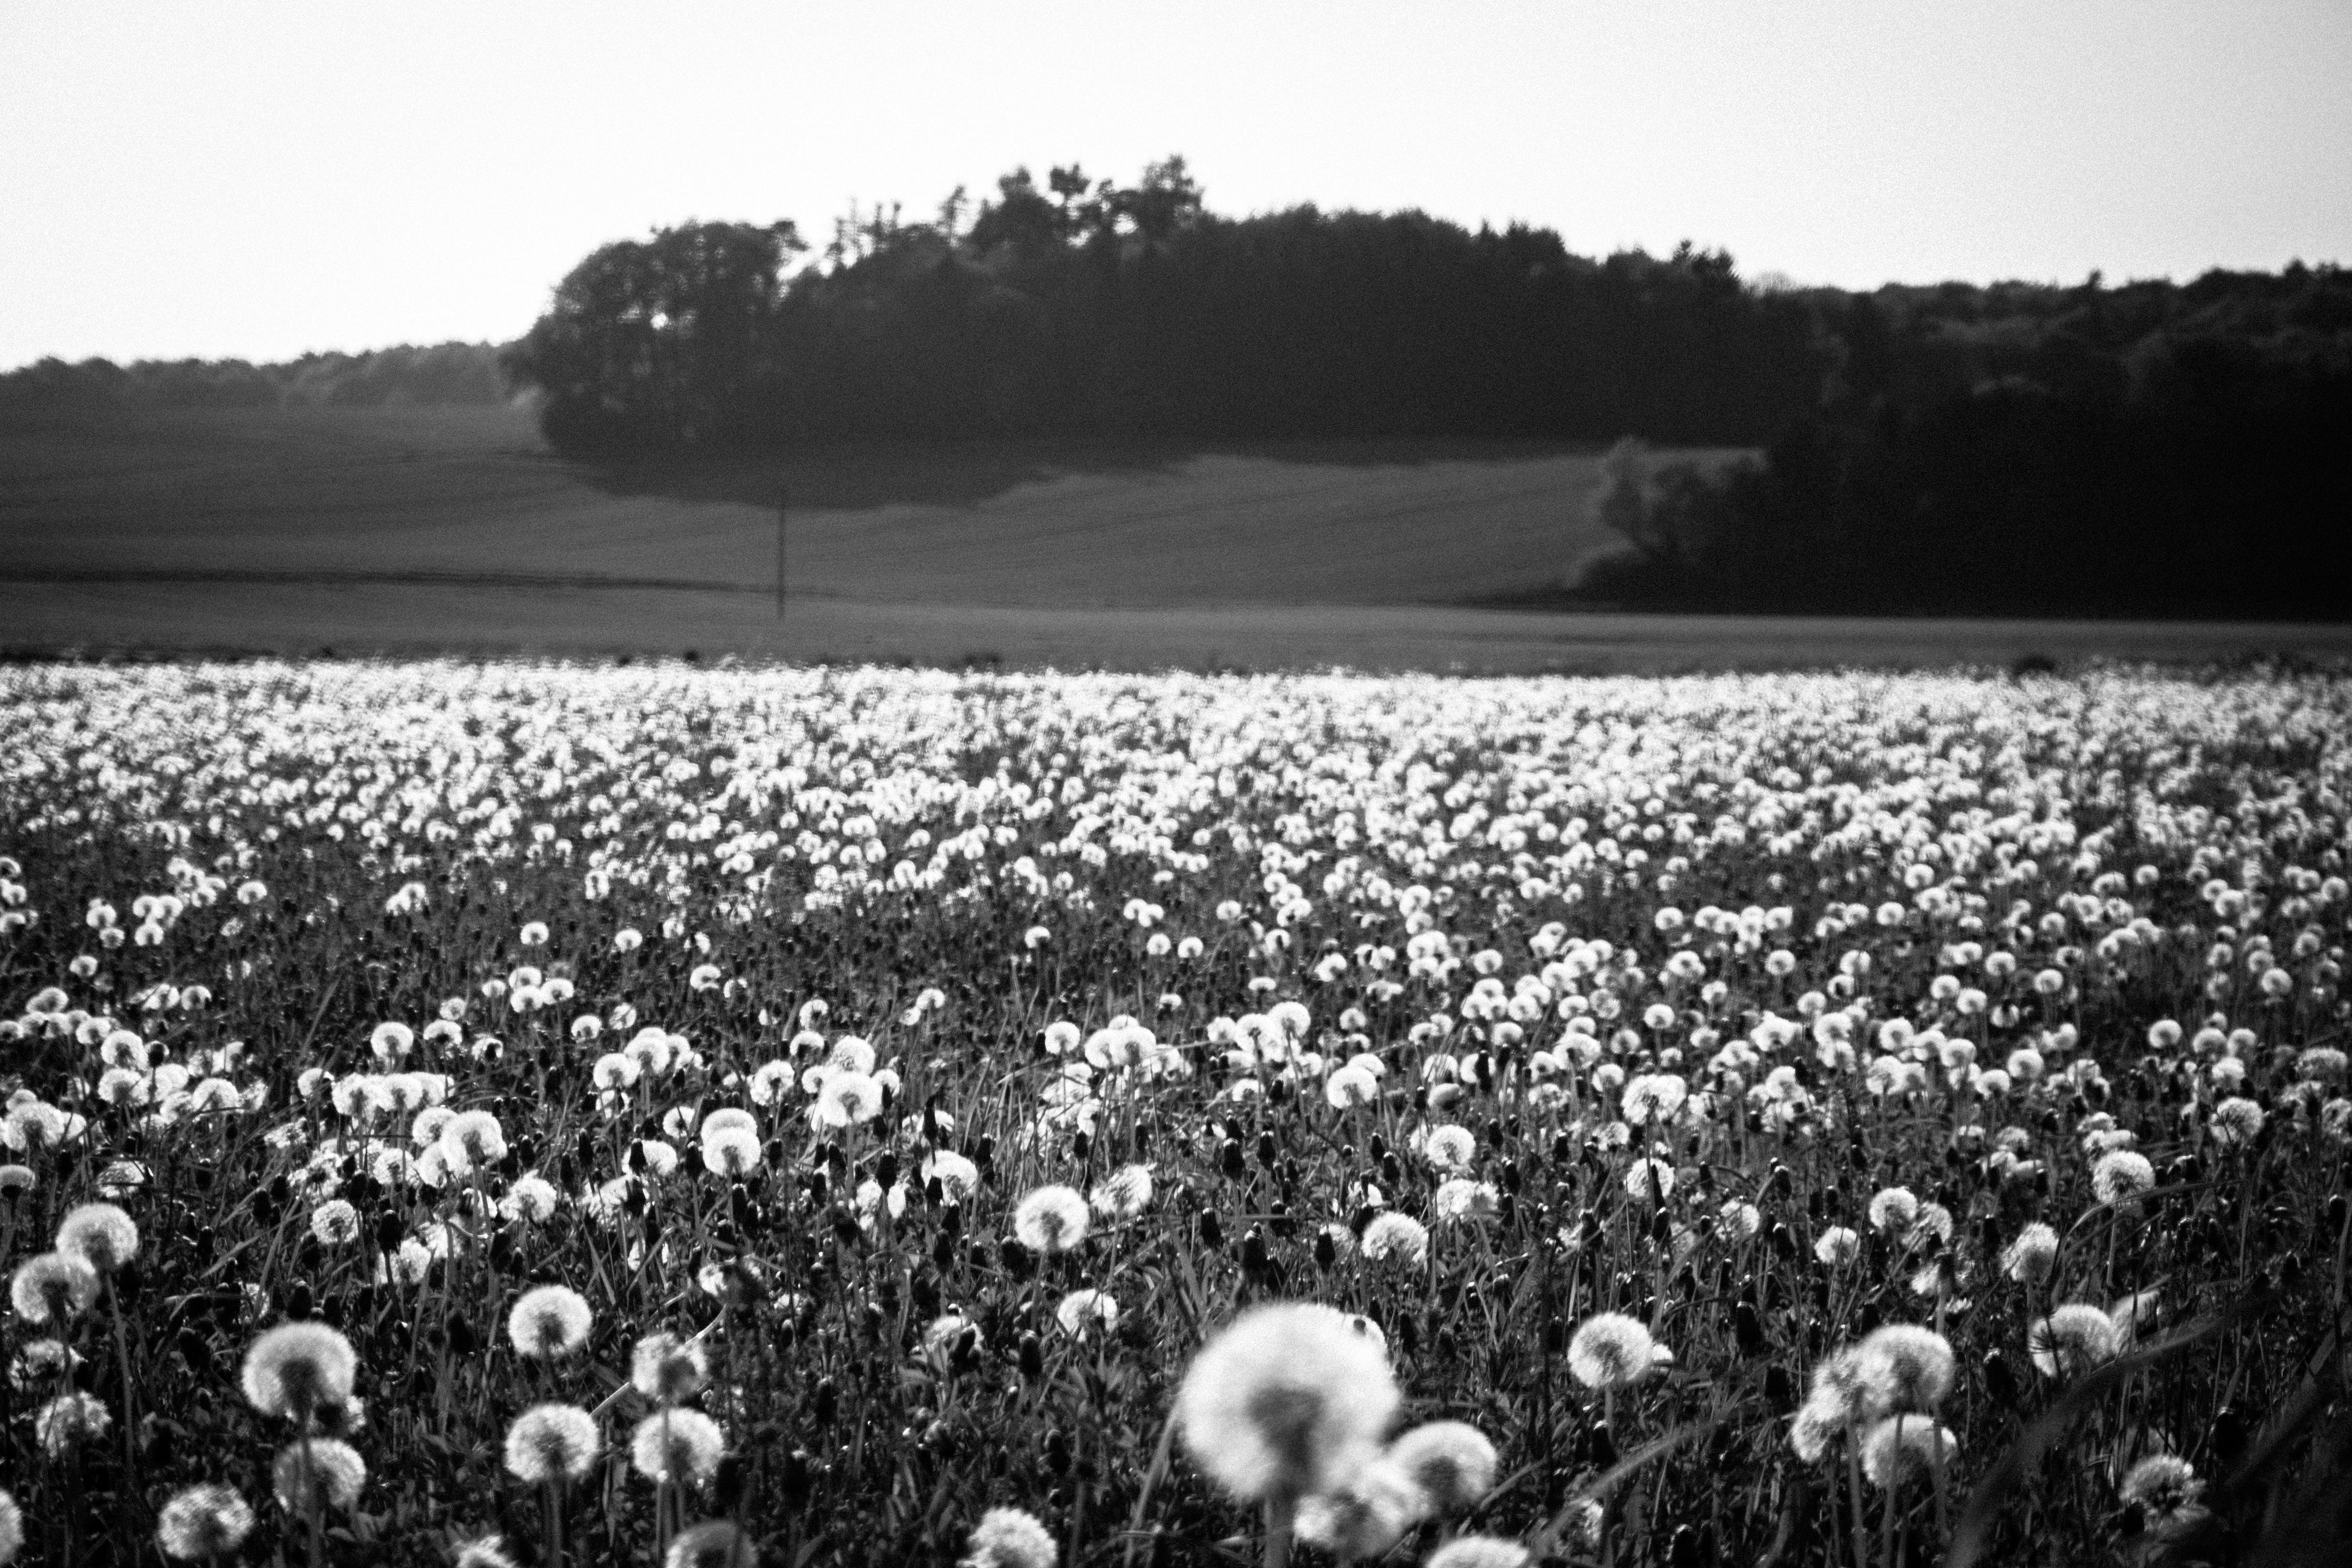 Grayscale Photo of Flower Field